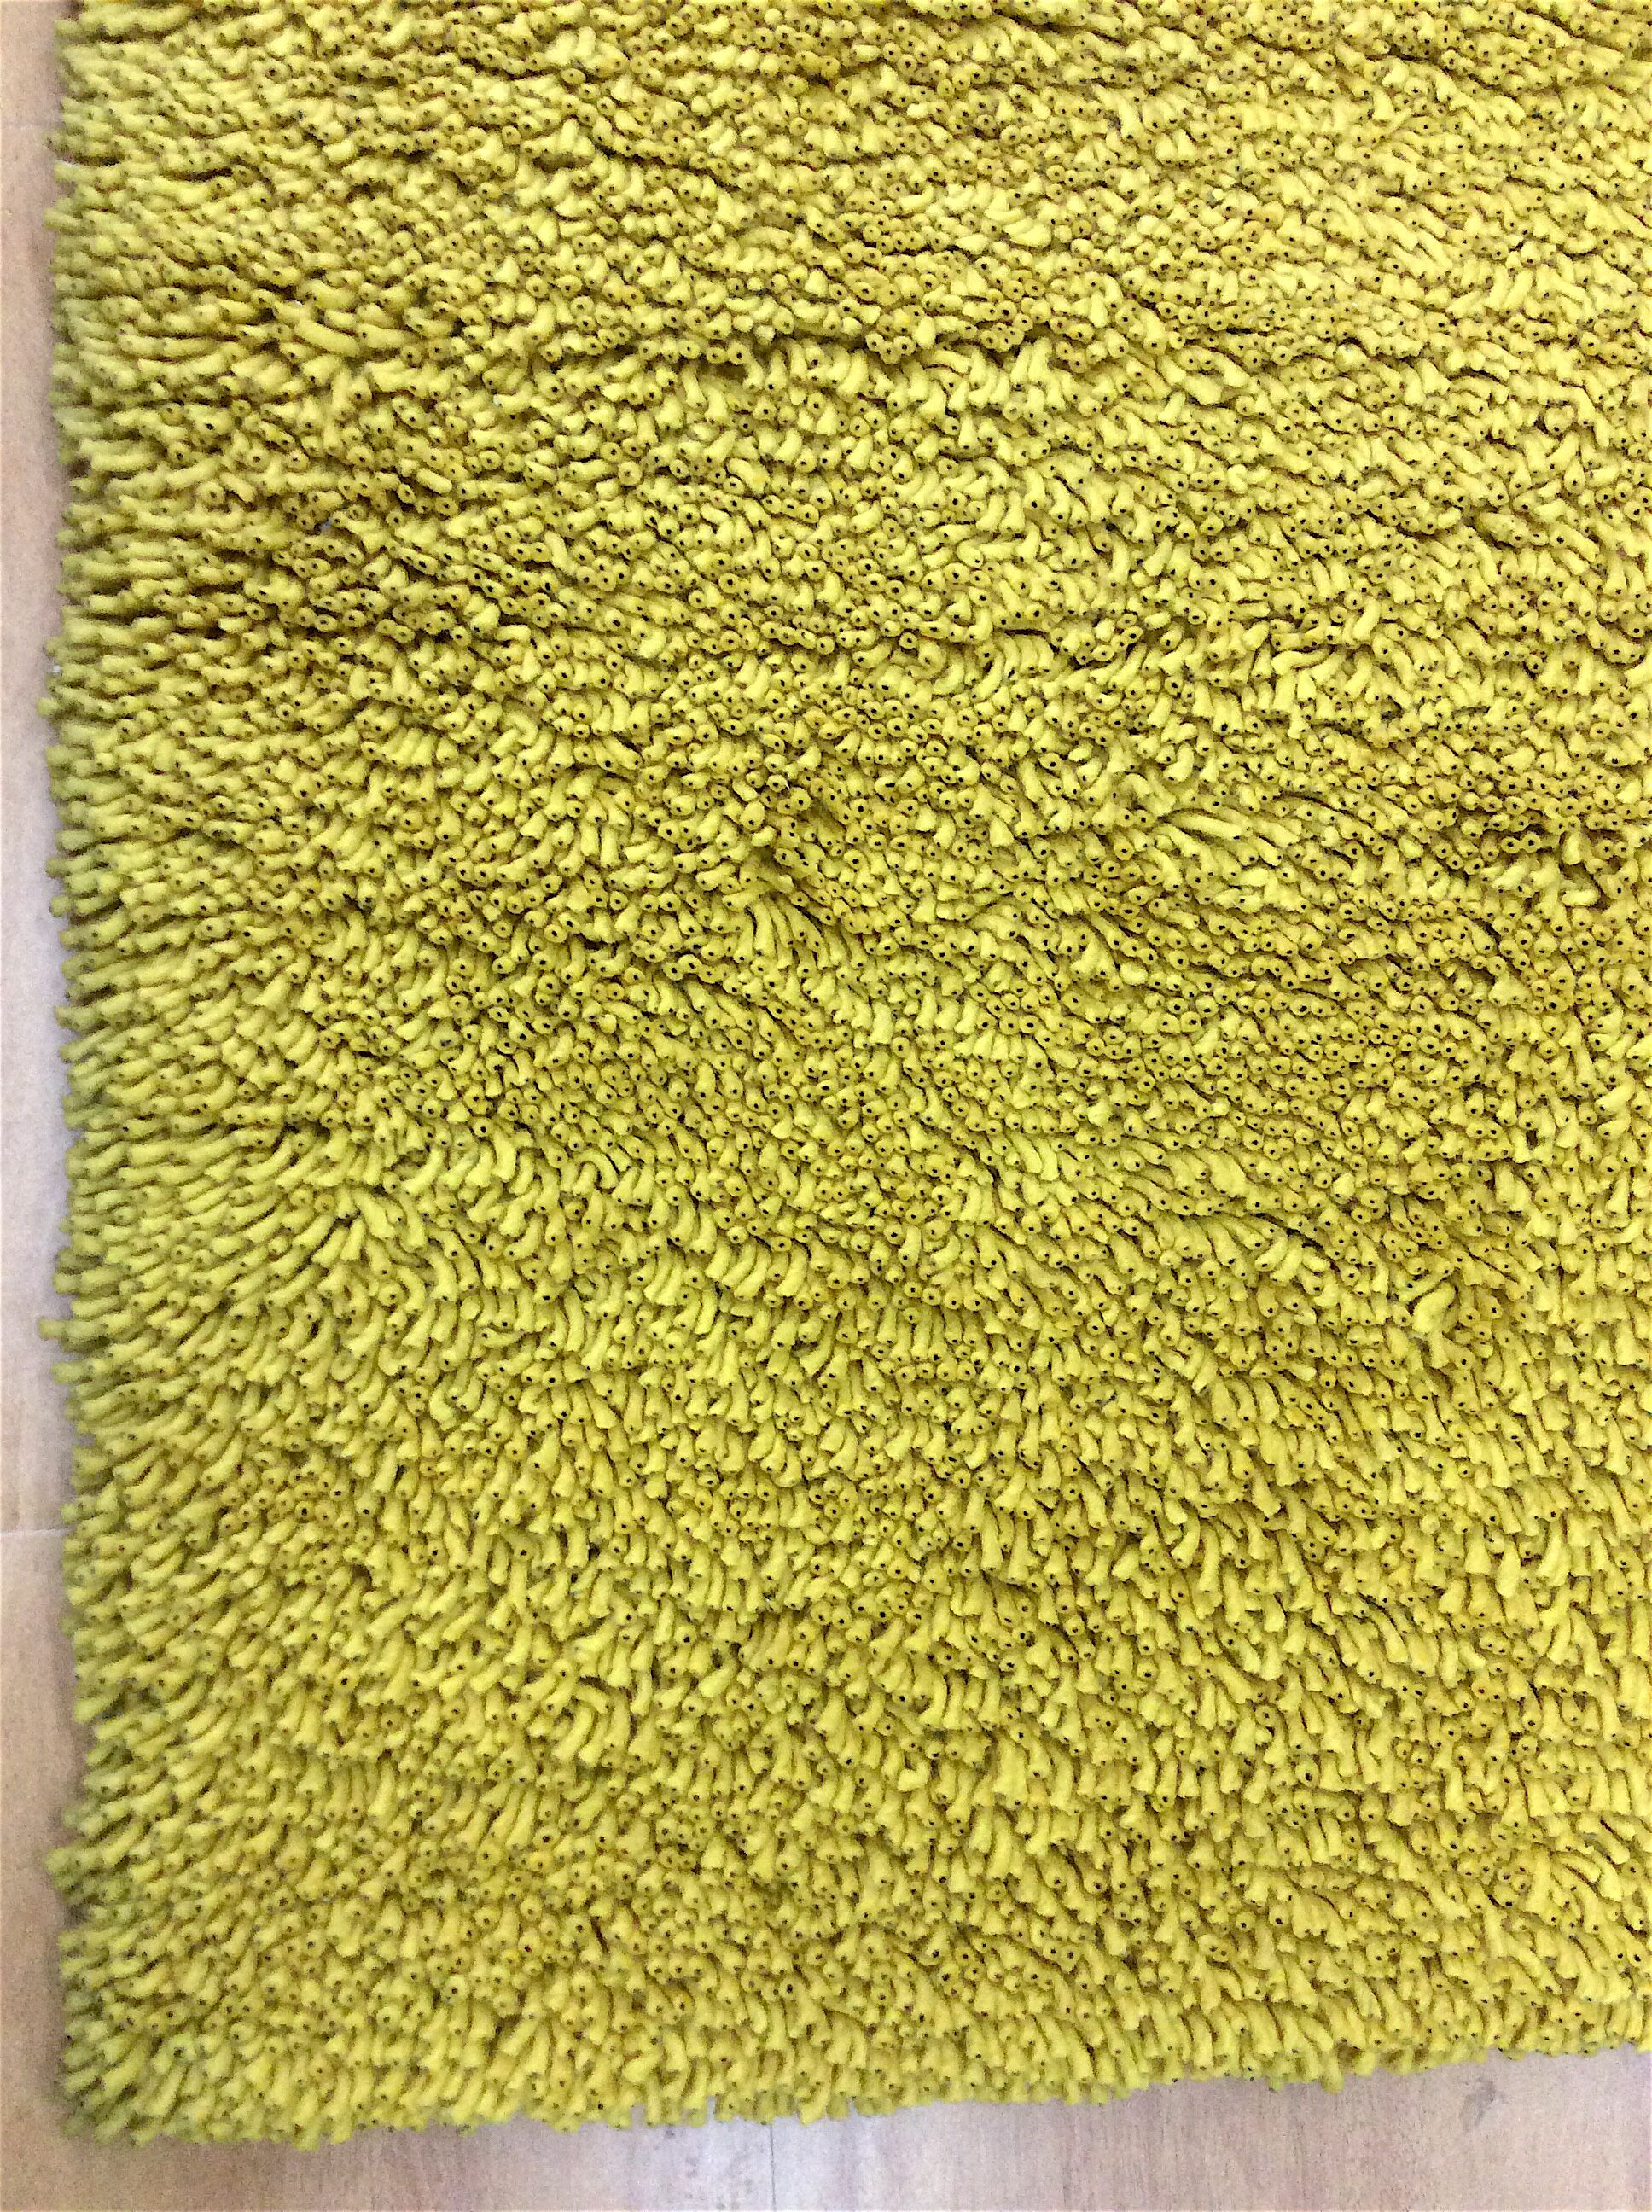 Shag Eyeball Woolen Mustard Hand Knotted Yellow Area Rug Rug Size: Round 10'